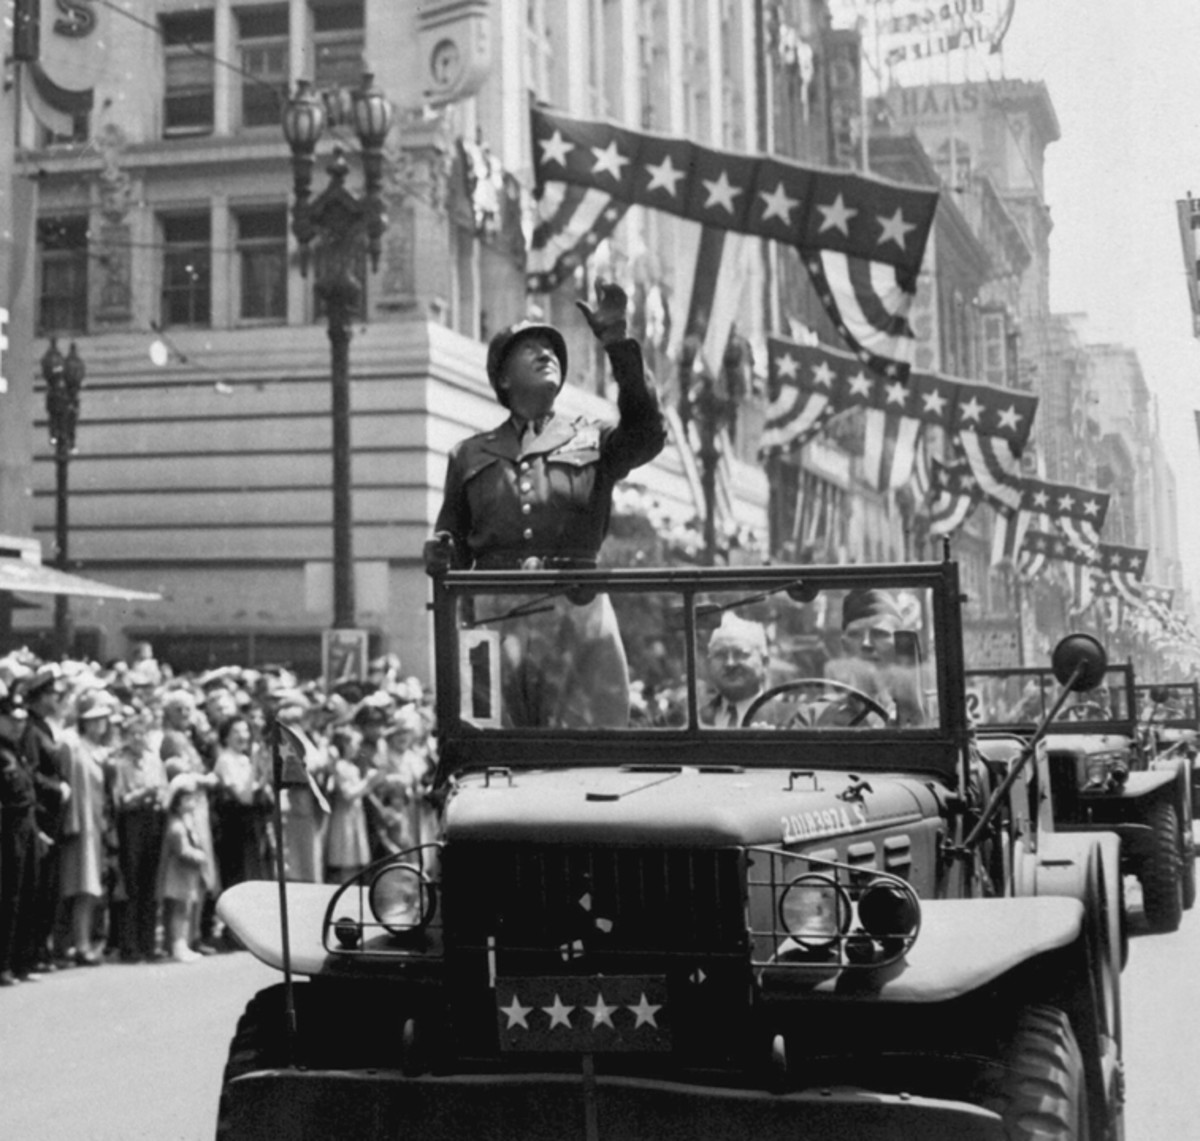 General George S. Patton acknowledging the cheers of the welcoming crowds in Los Angeles, CA, during his visit on June 9, 1945, standing in his command car.